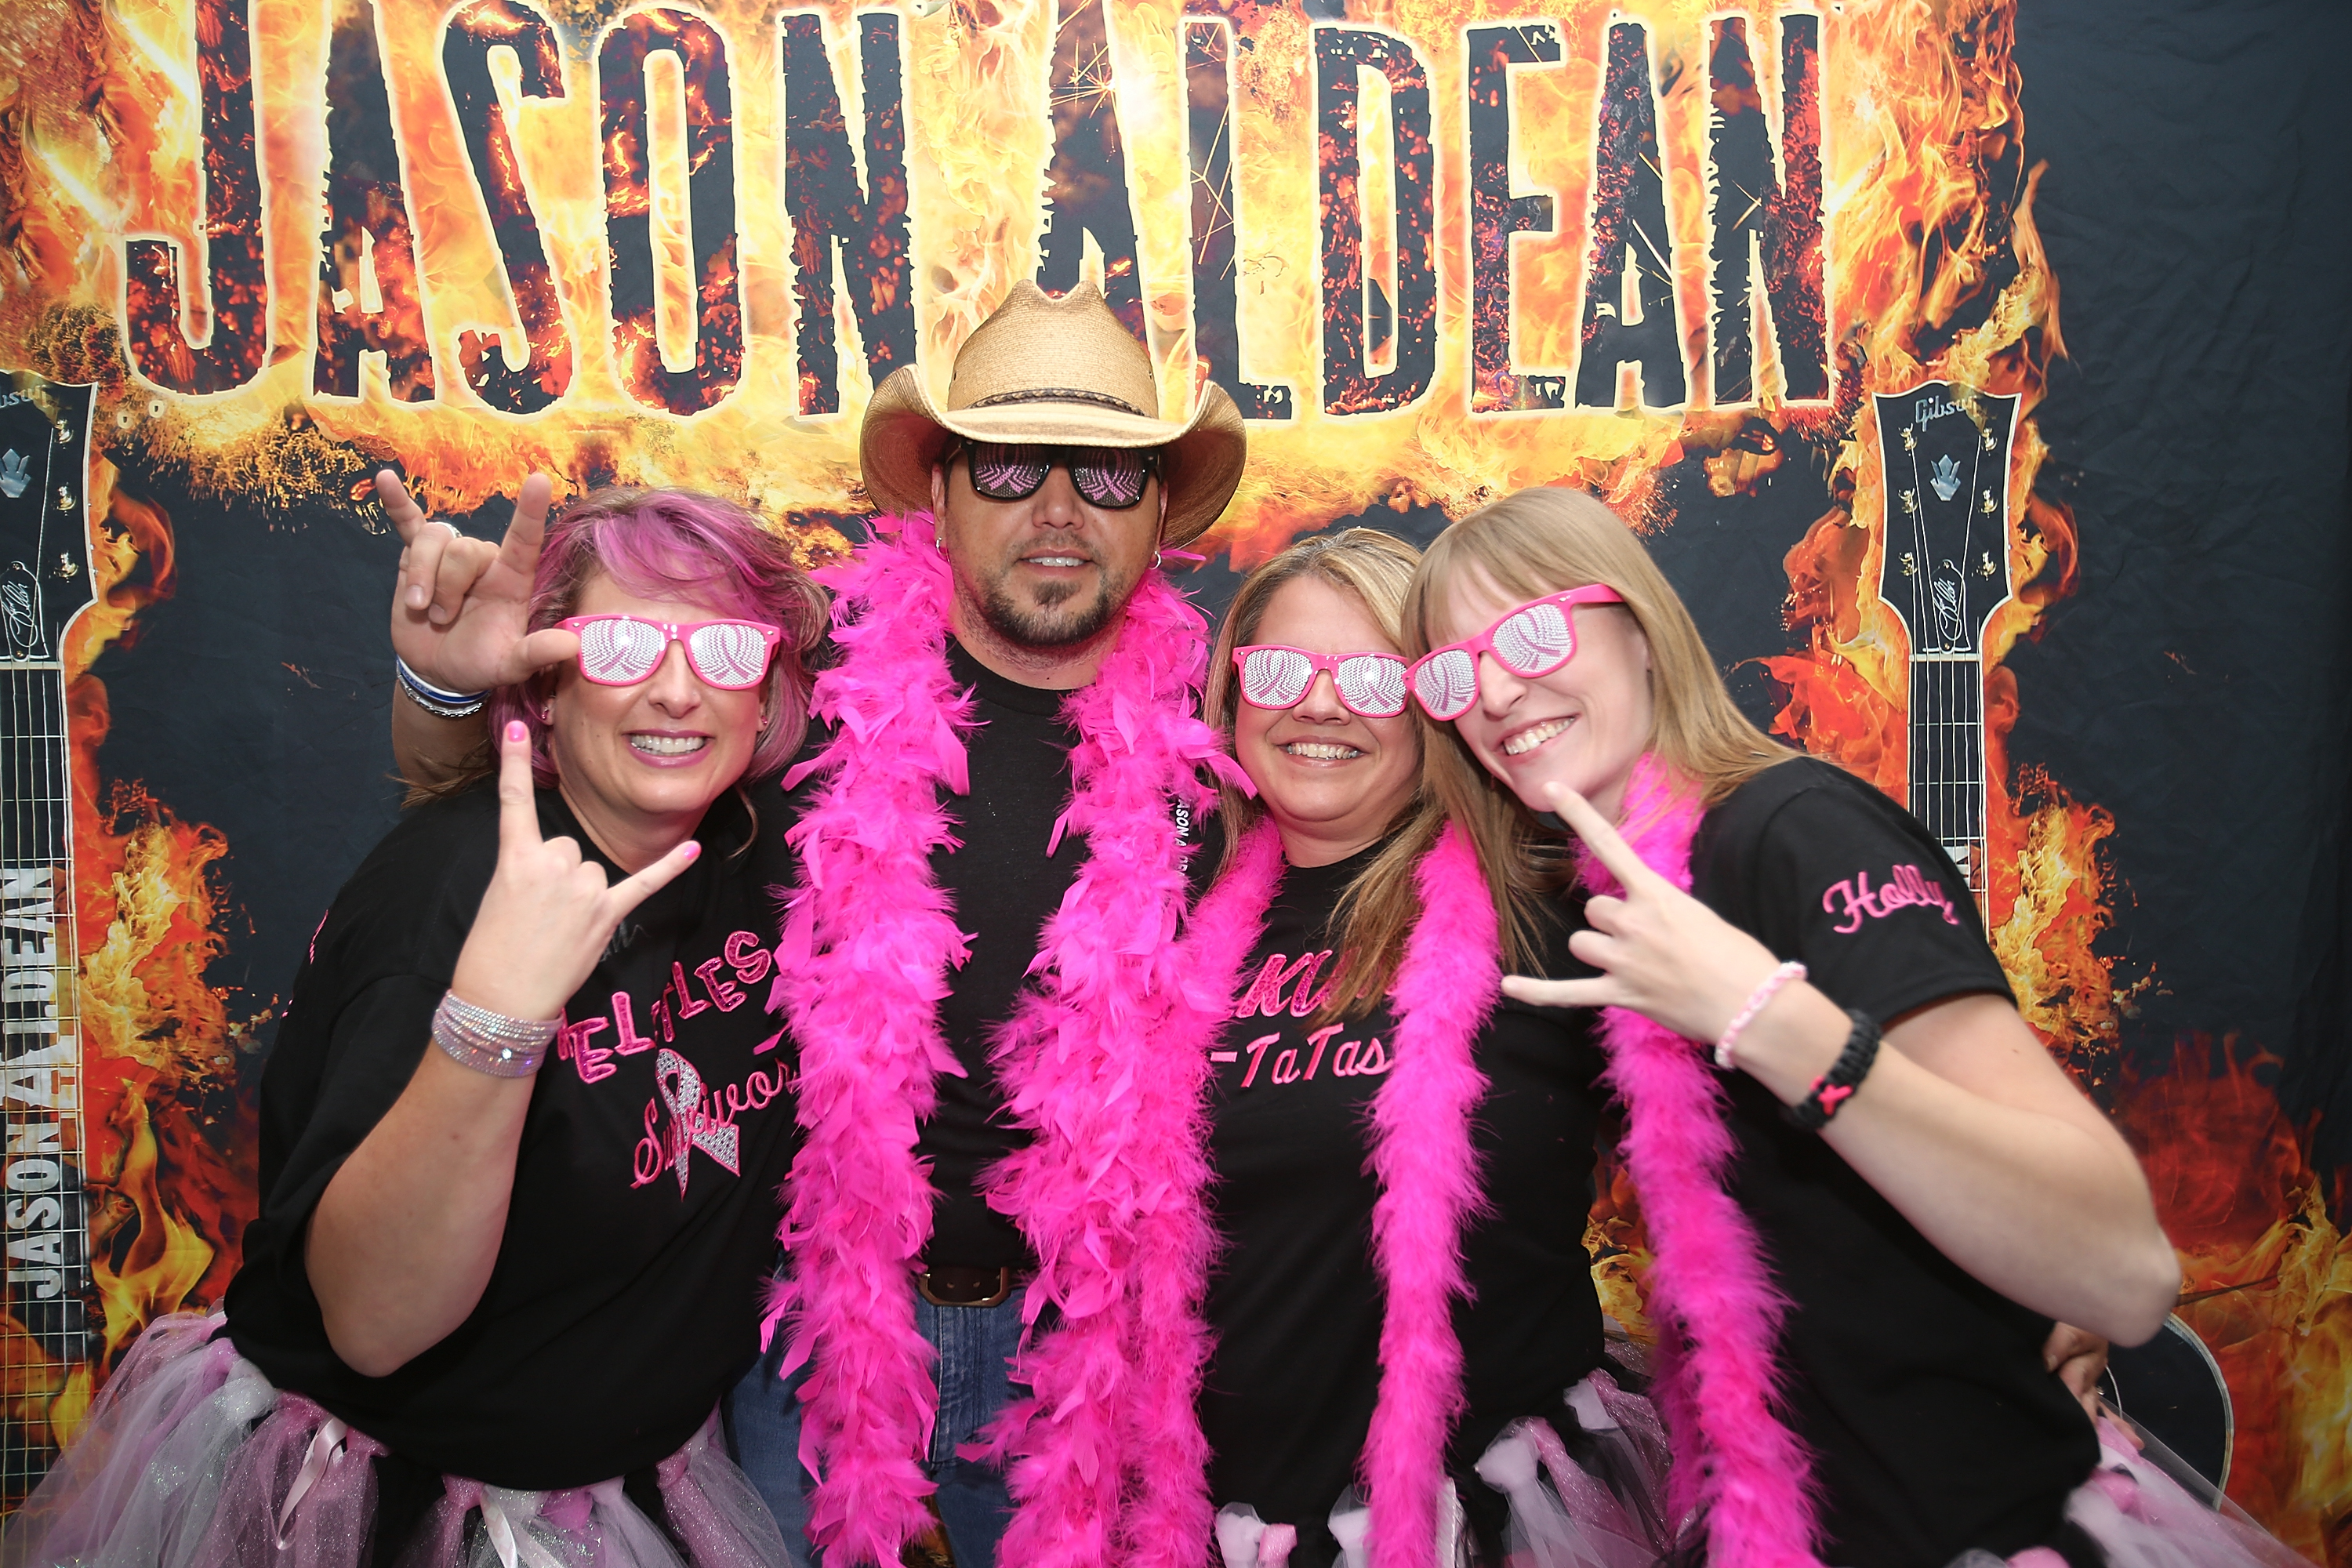 Jason Aldeans Concert For The Cure Heads To Nashville Sounds Like